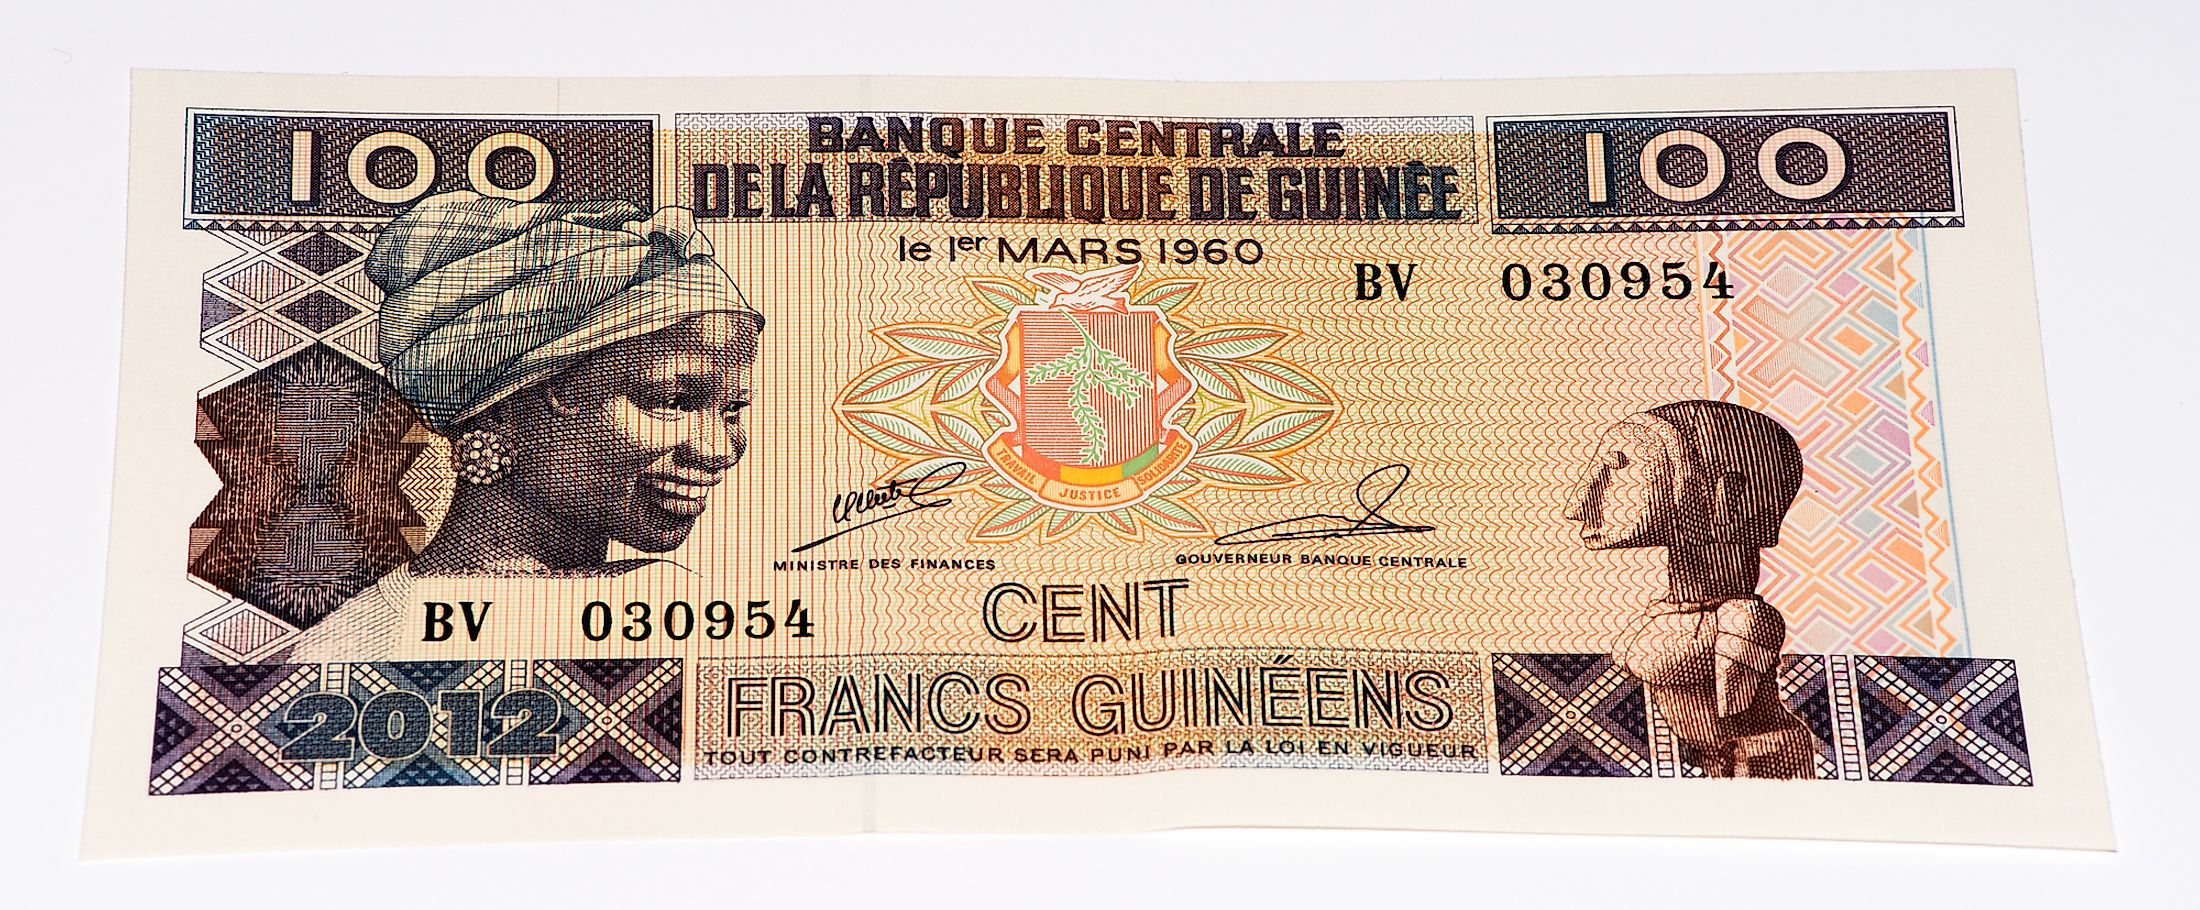 Guinea-Bissau West African CFA franc banknote.